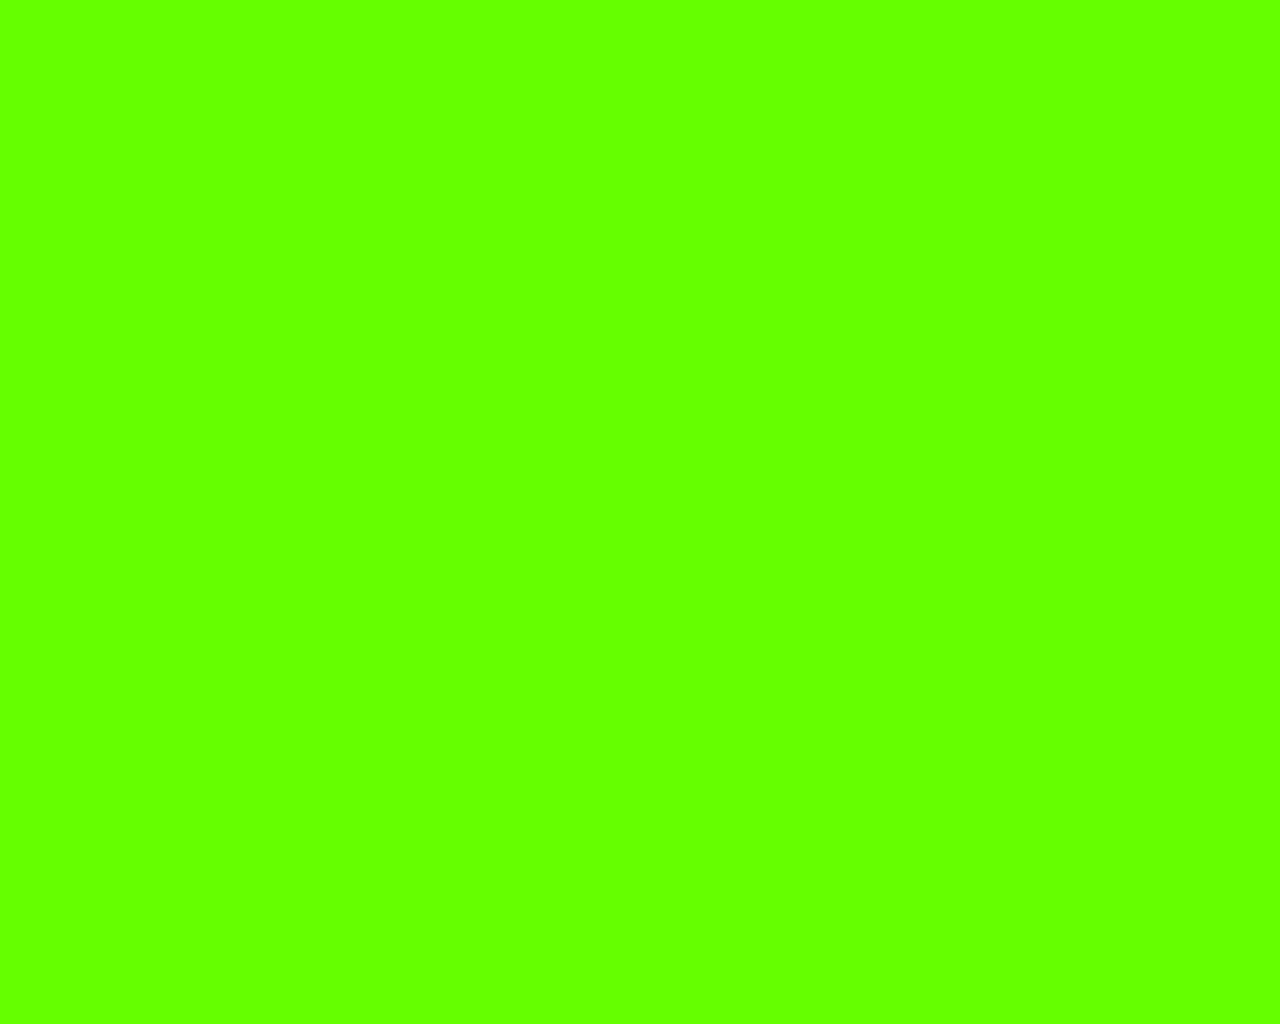 1280x1024 Bright Green Solid Color Background